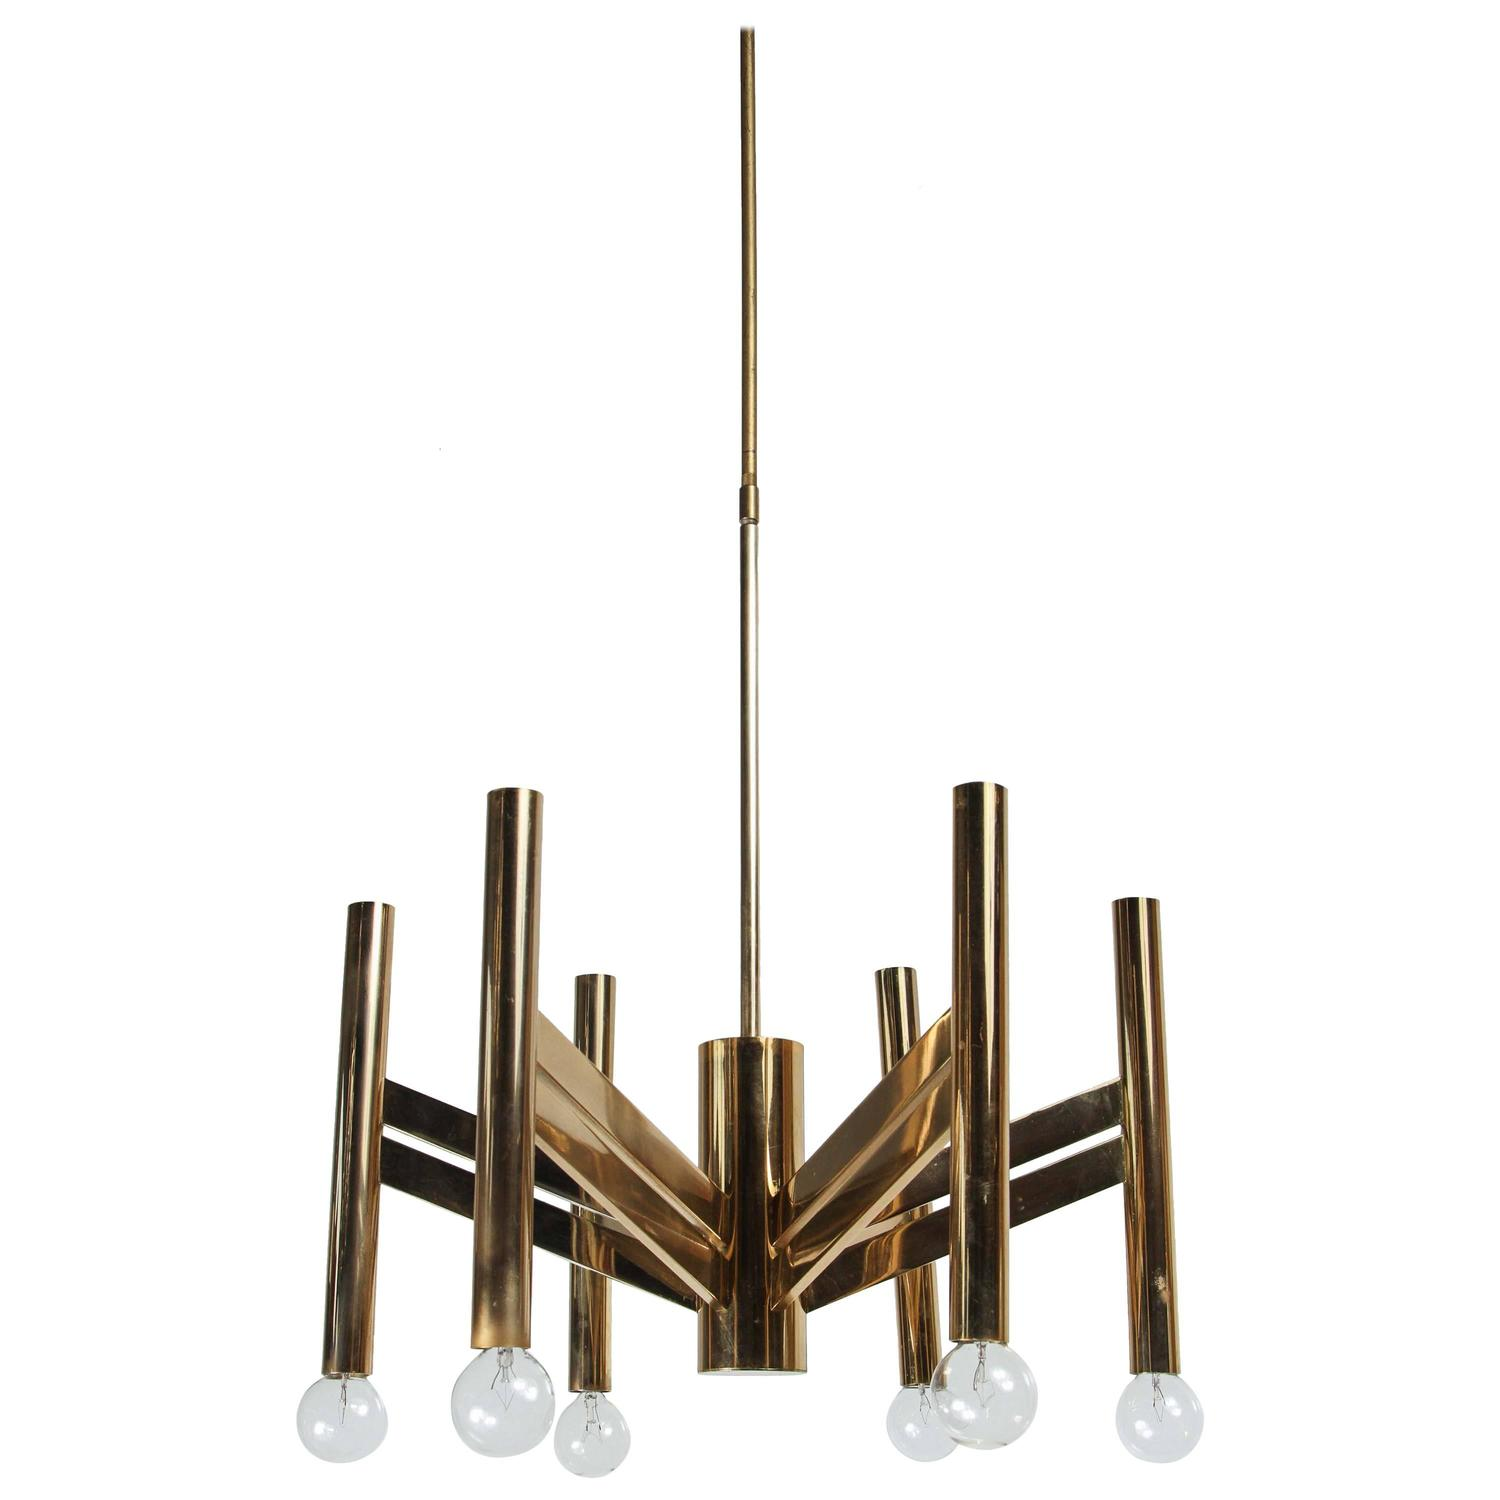 Geometric Brass Chandelier: Geometric Brass Chandelier By Sciolari At 1stdibs